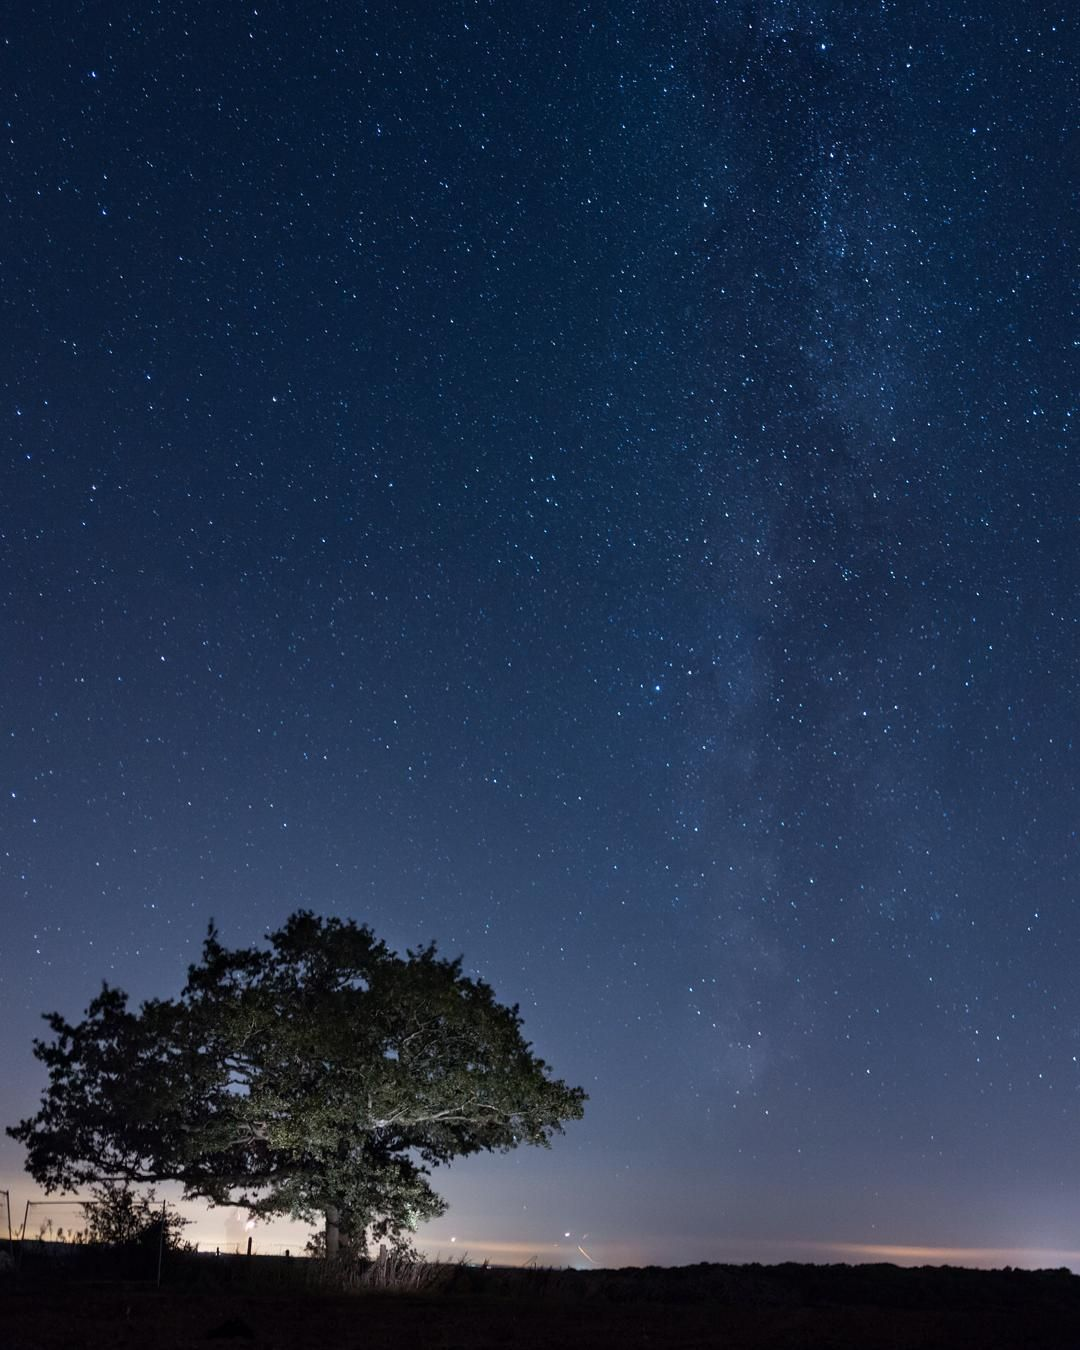 More star photography with the #sony #rx100iv shot at 24sec f1.8 ISO 1600…